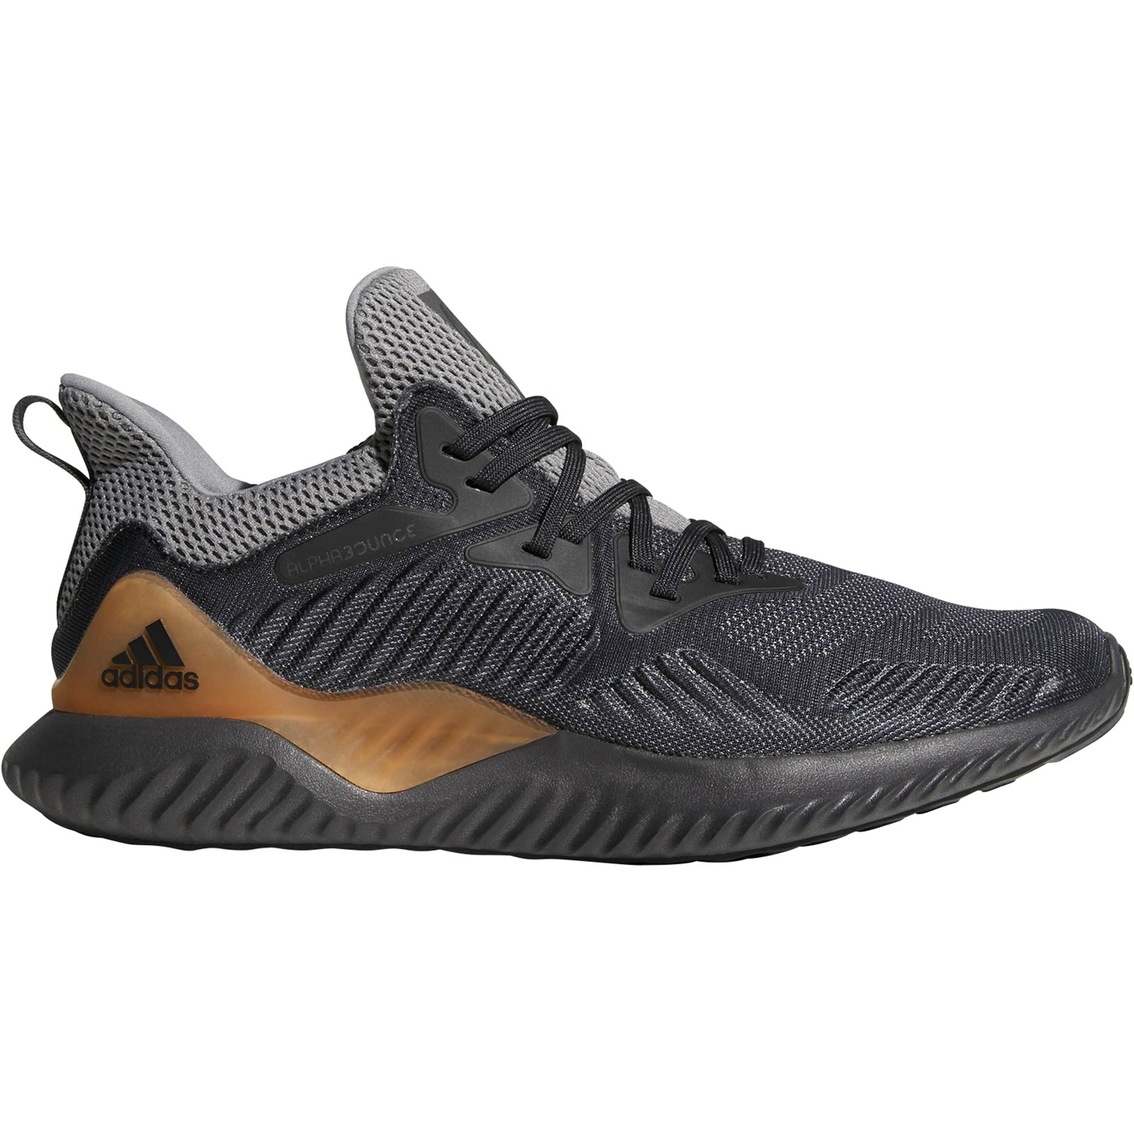 cb2ad7307b6f4b Adidas Men s Alphabounce Byd Running Shoes